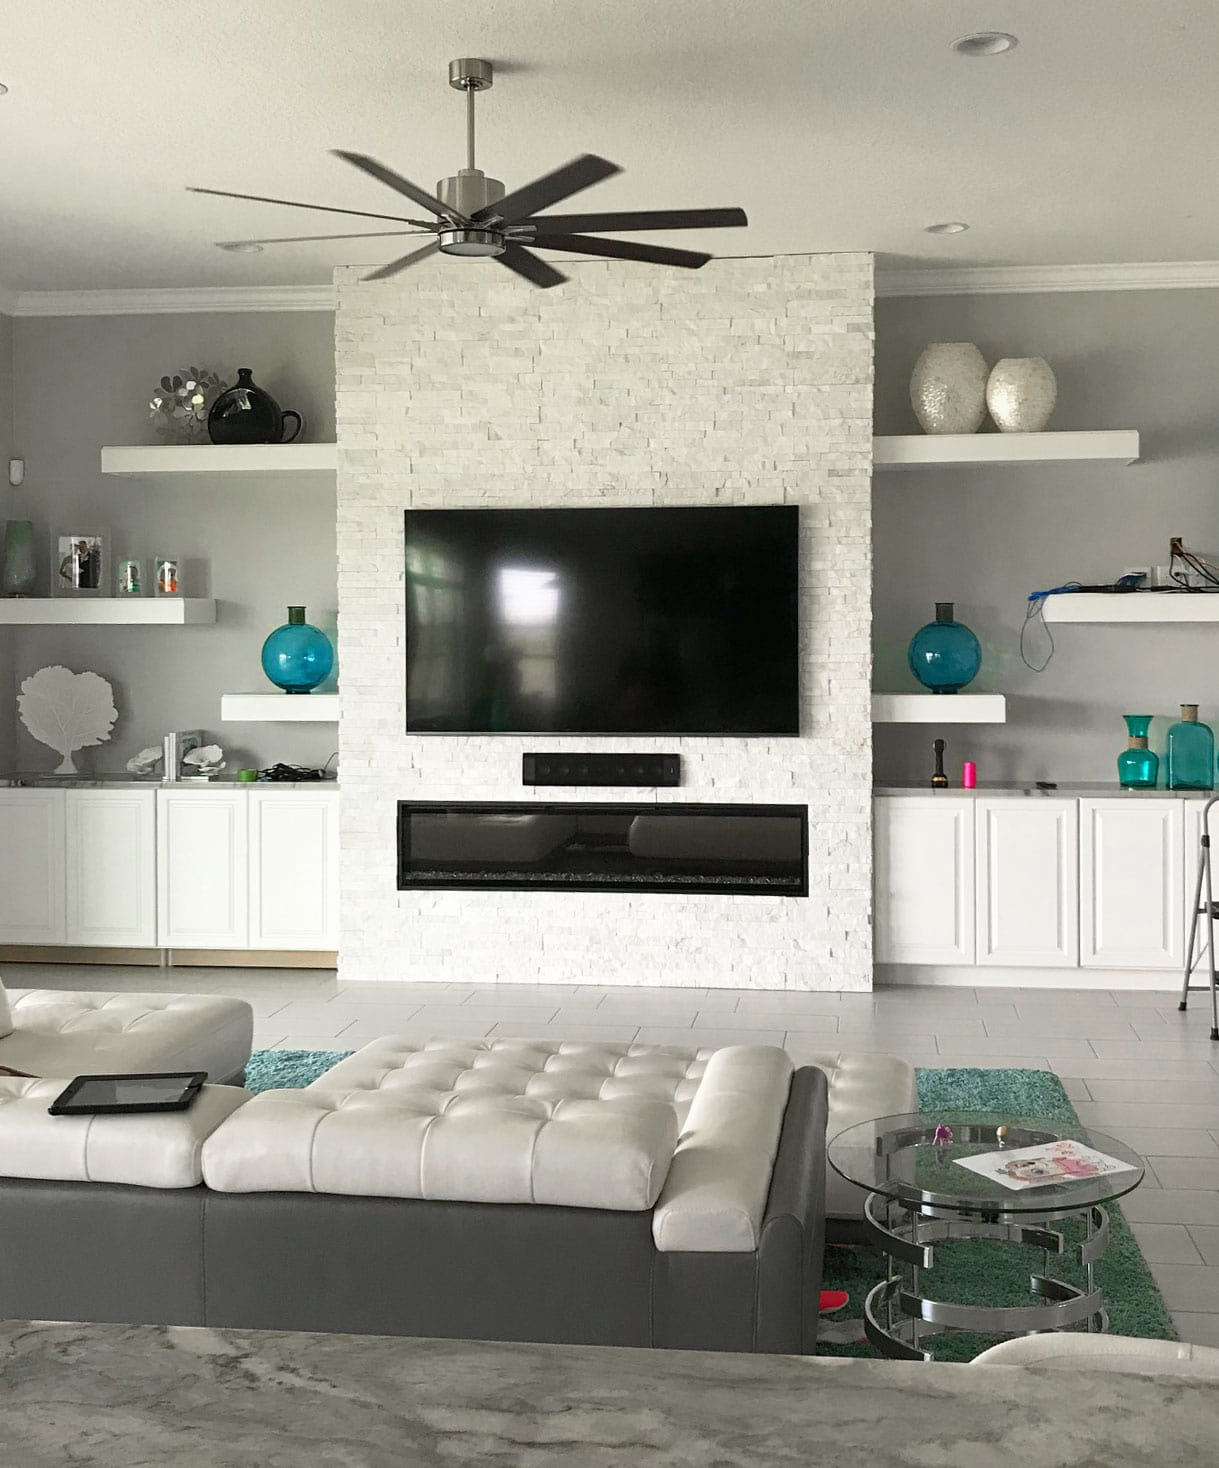 White Stacked Stone on a fireplace in a modern living room was a very popular trend in the summer of 2019